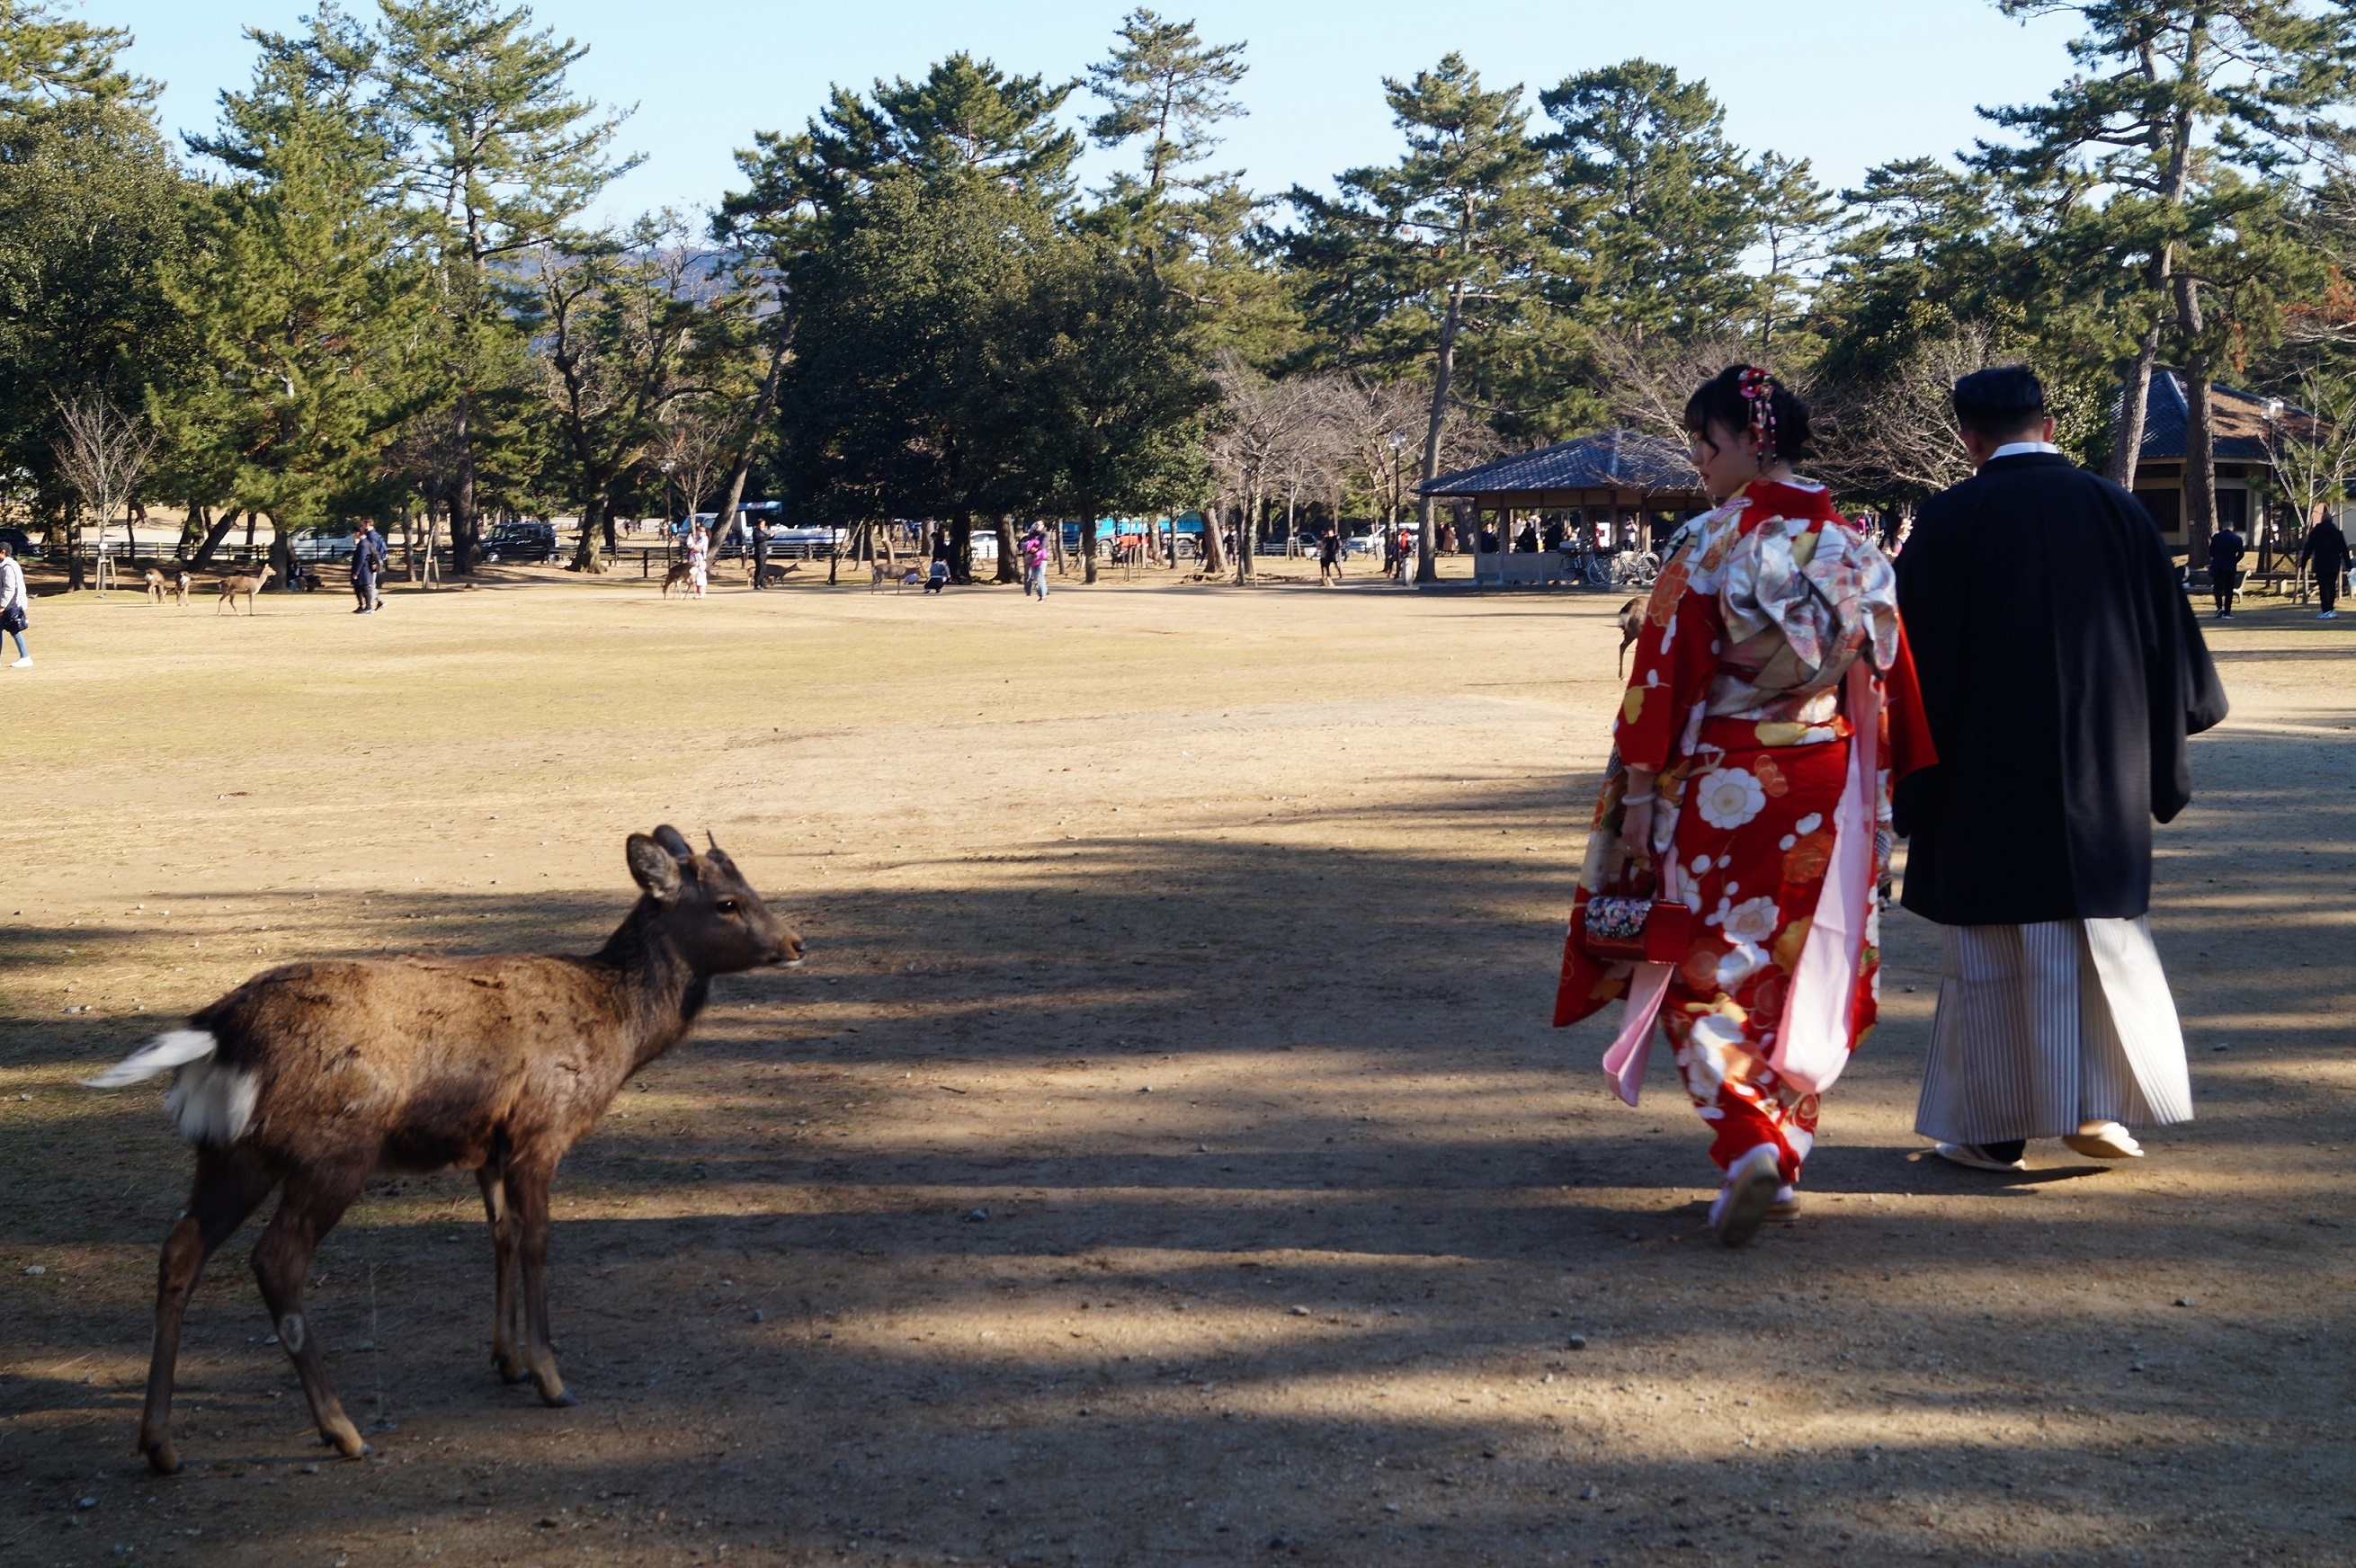 Nara Parque de Nara Vestidos tradicionales 2 - Nara Park and the Sacred Deer of Japan